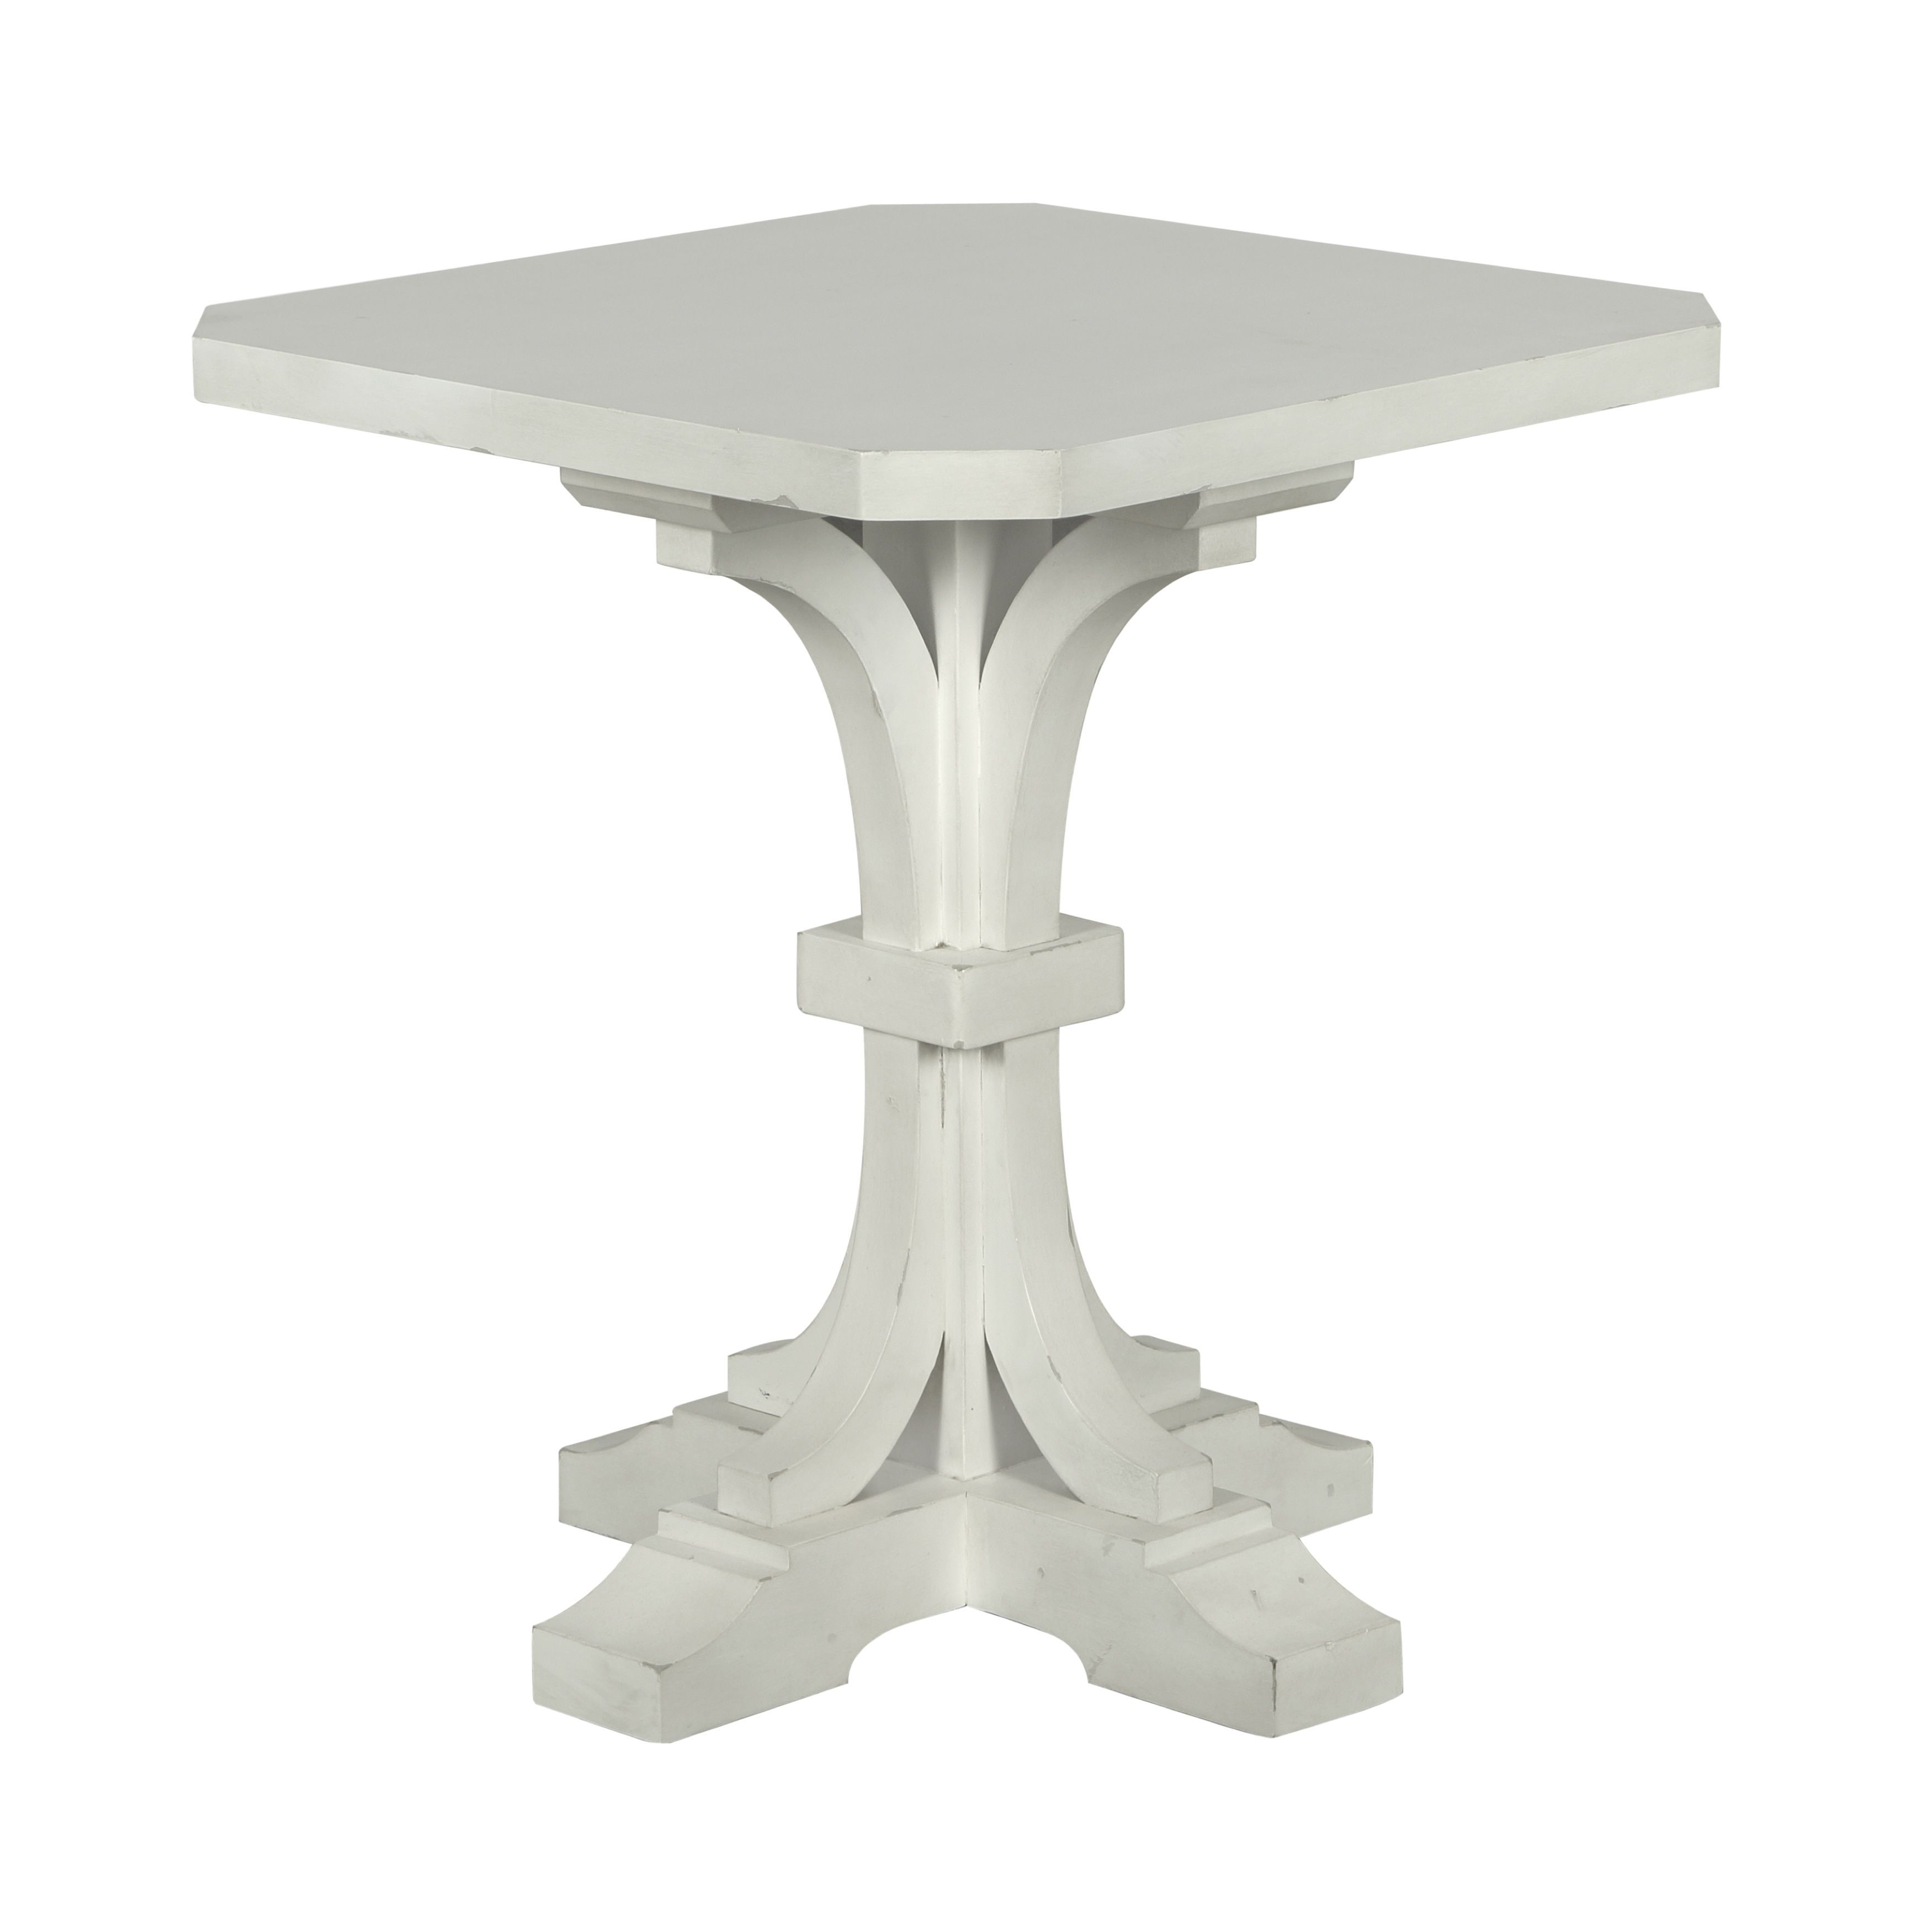 outdoor table pedestal round end marble tables furniture room off eryn antique whitewash corner white top metal accent small nero whitewashed distressed living full size tiffany